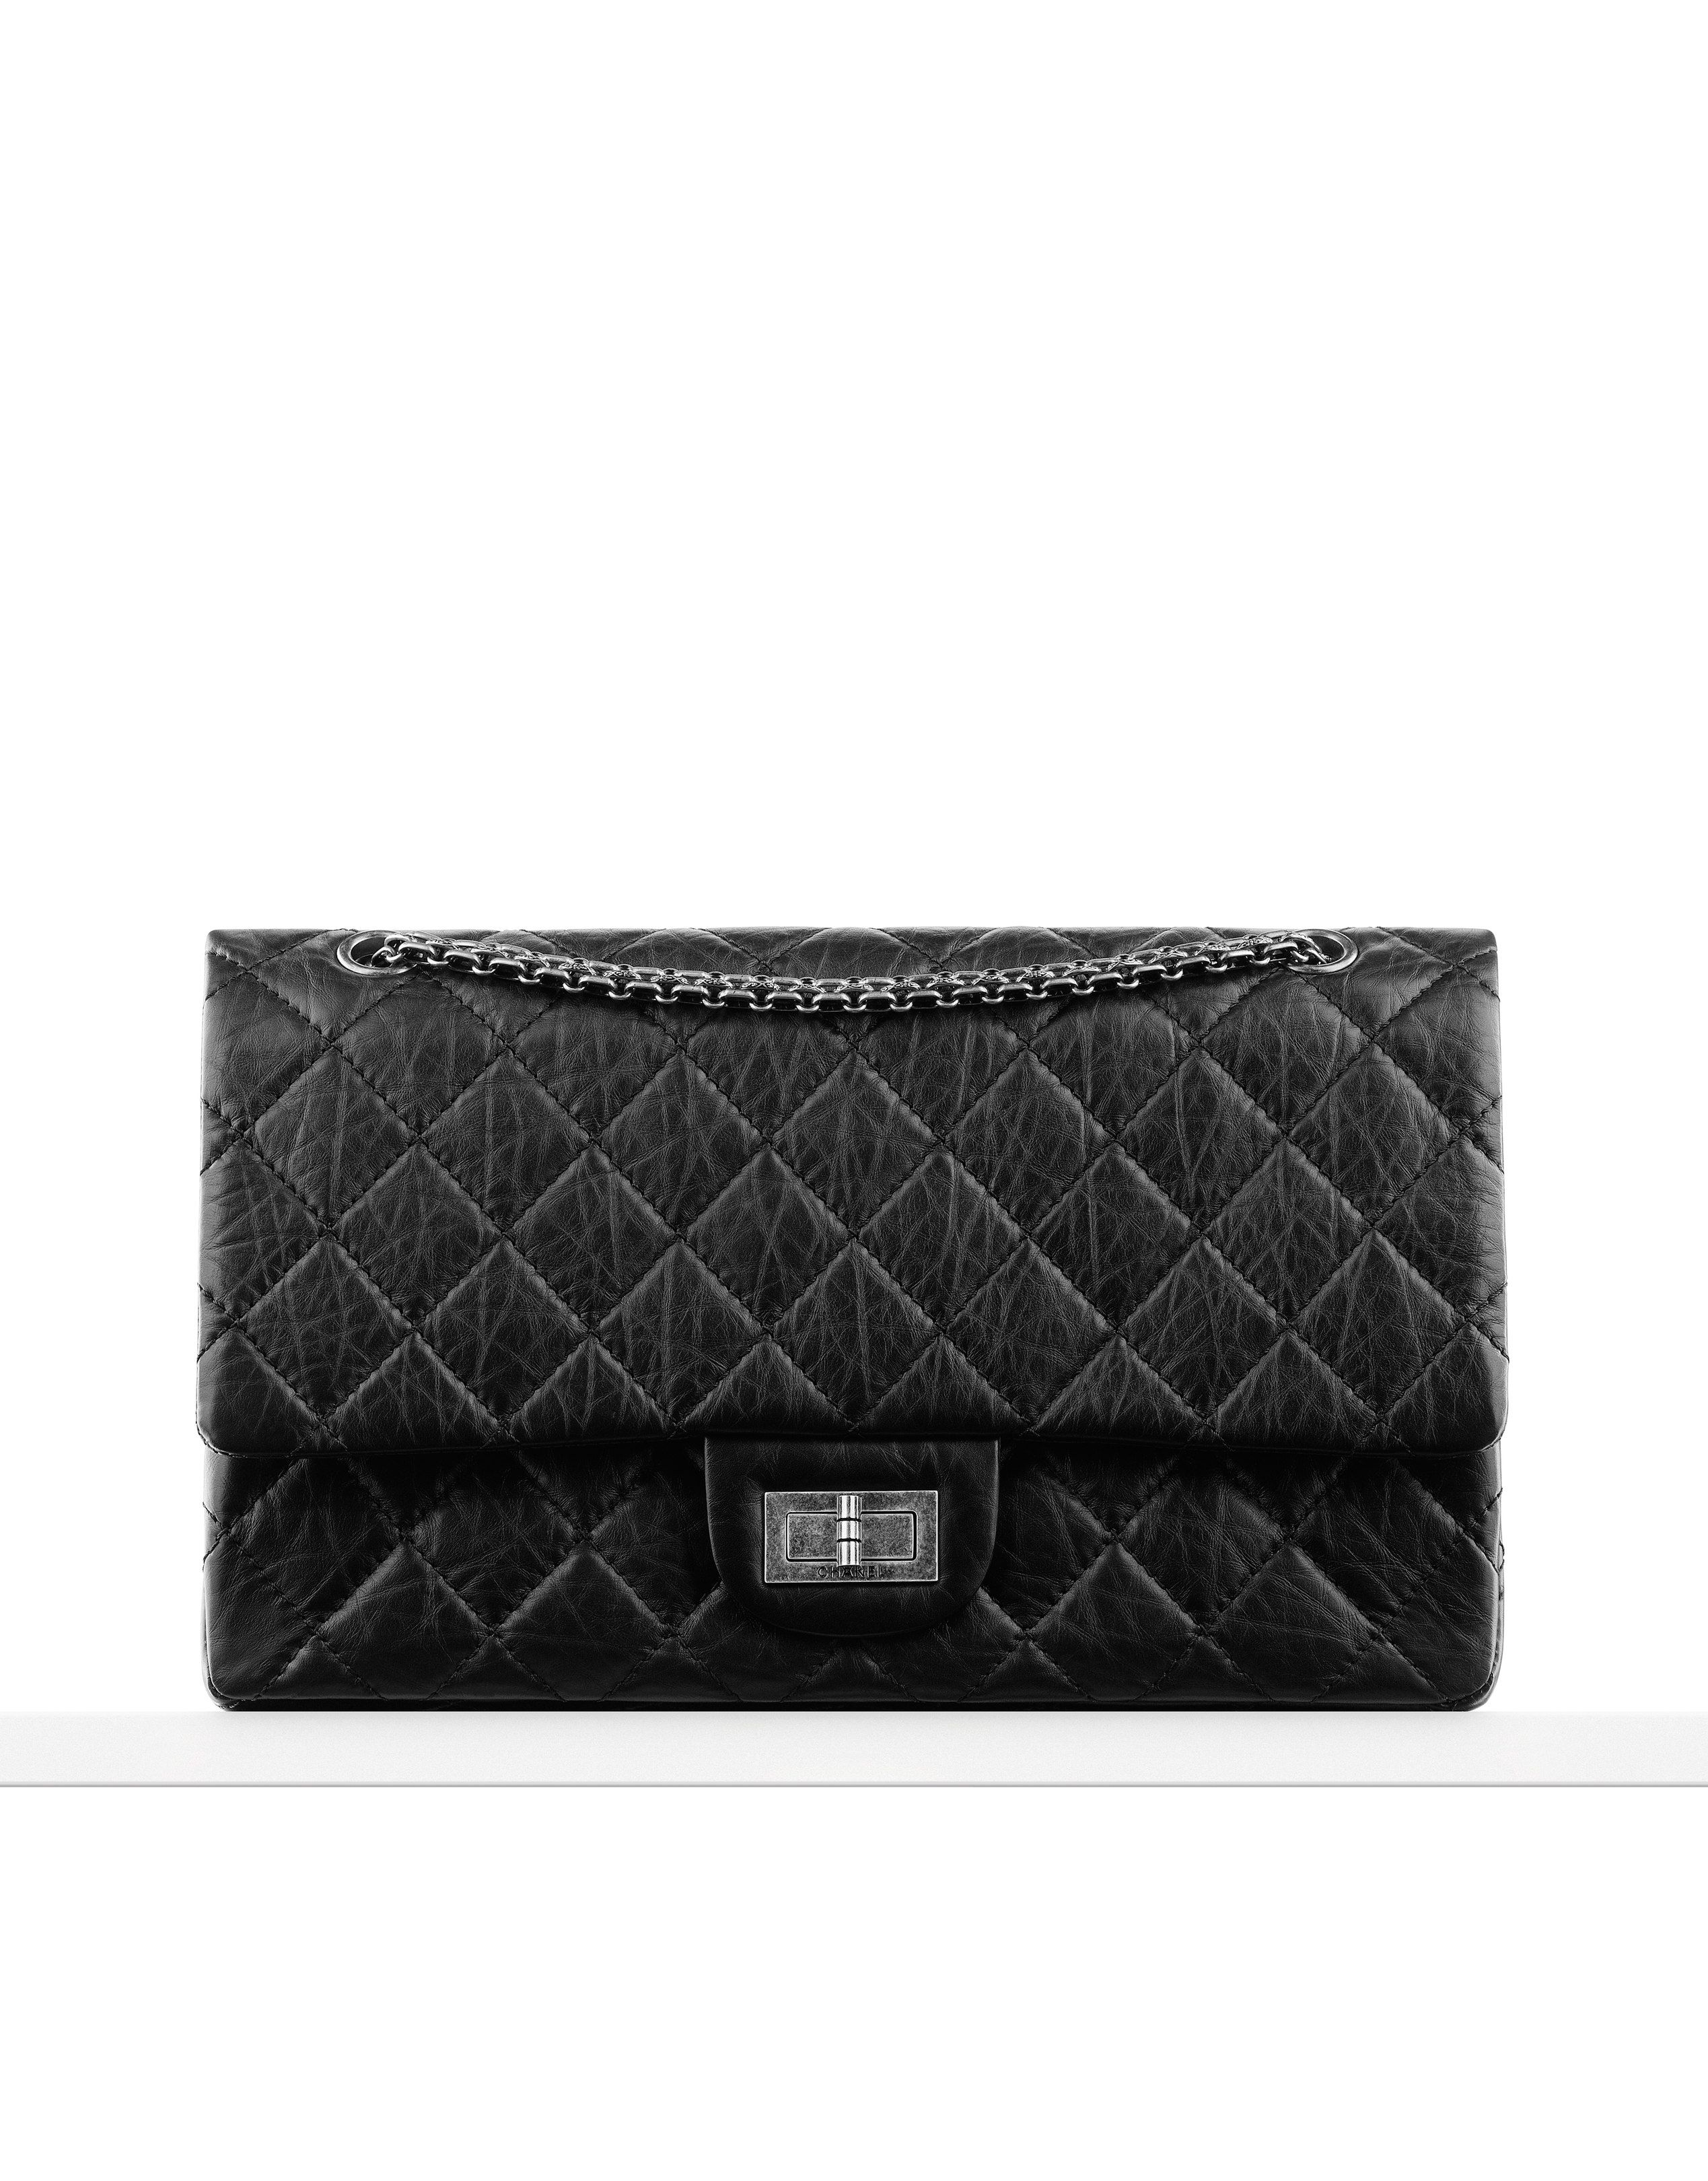 1fb54c42eb0b Large 2.55 flap bag in quilted aged... - CHANEL